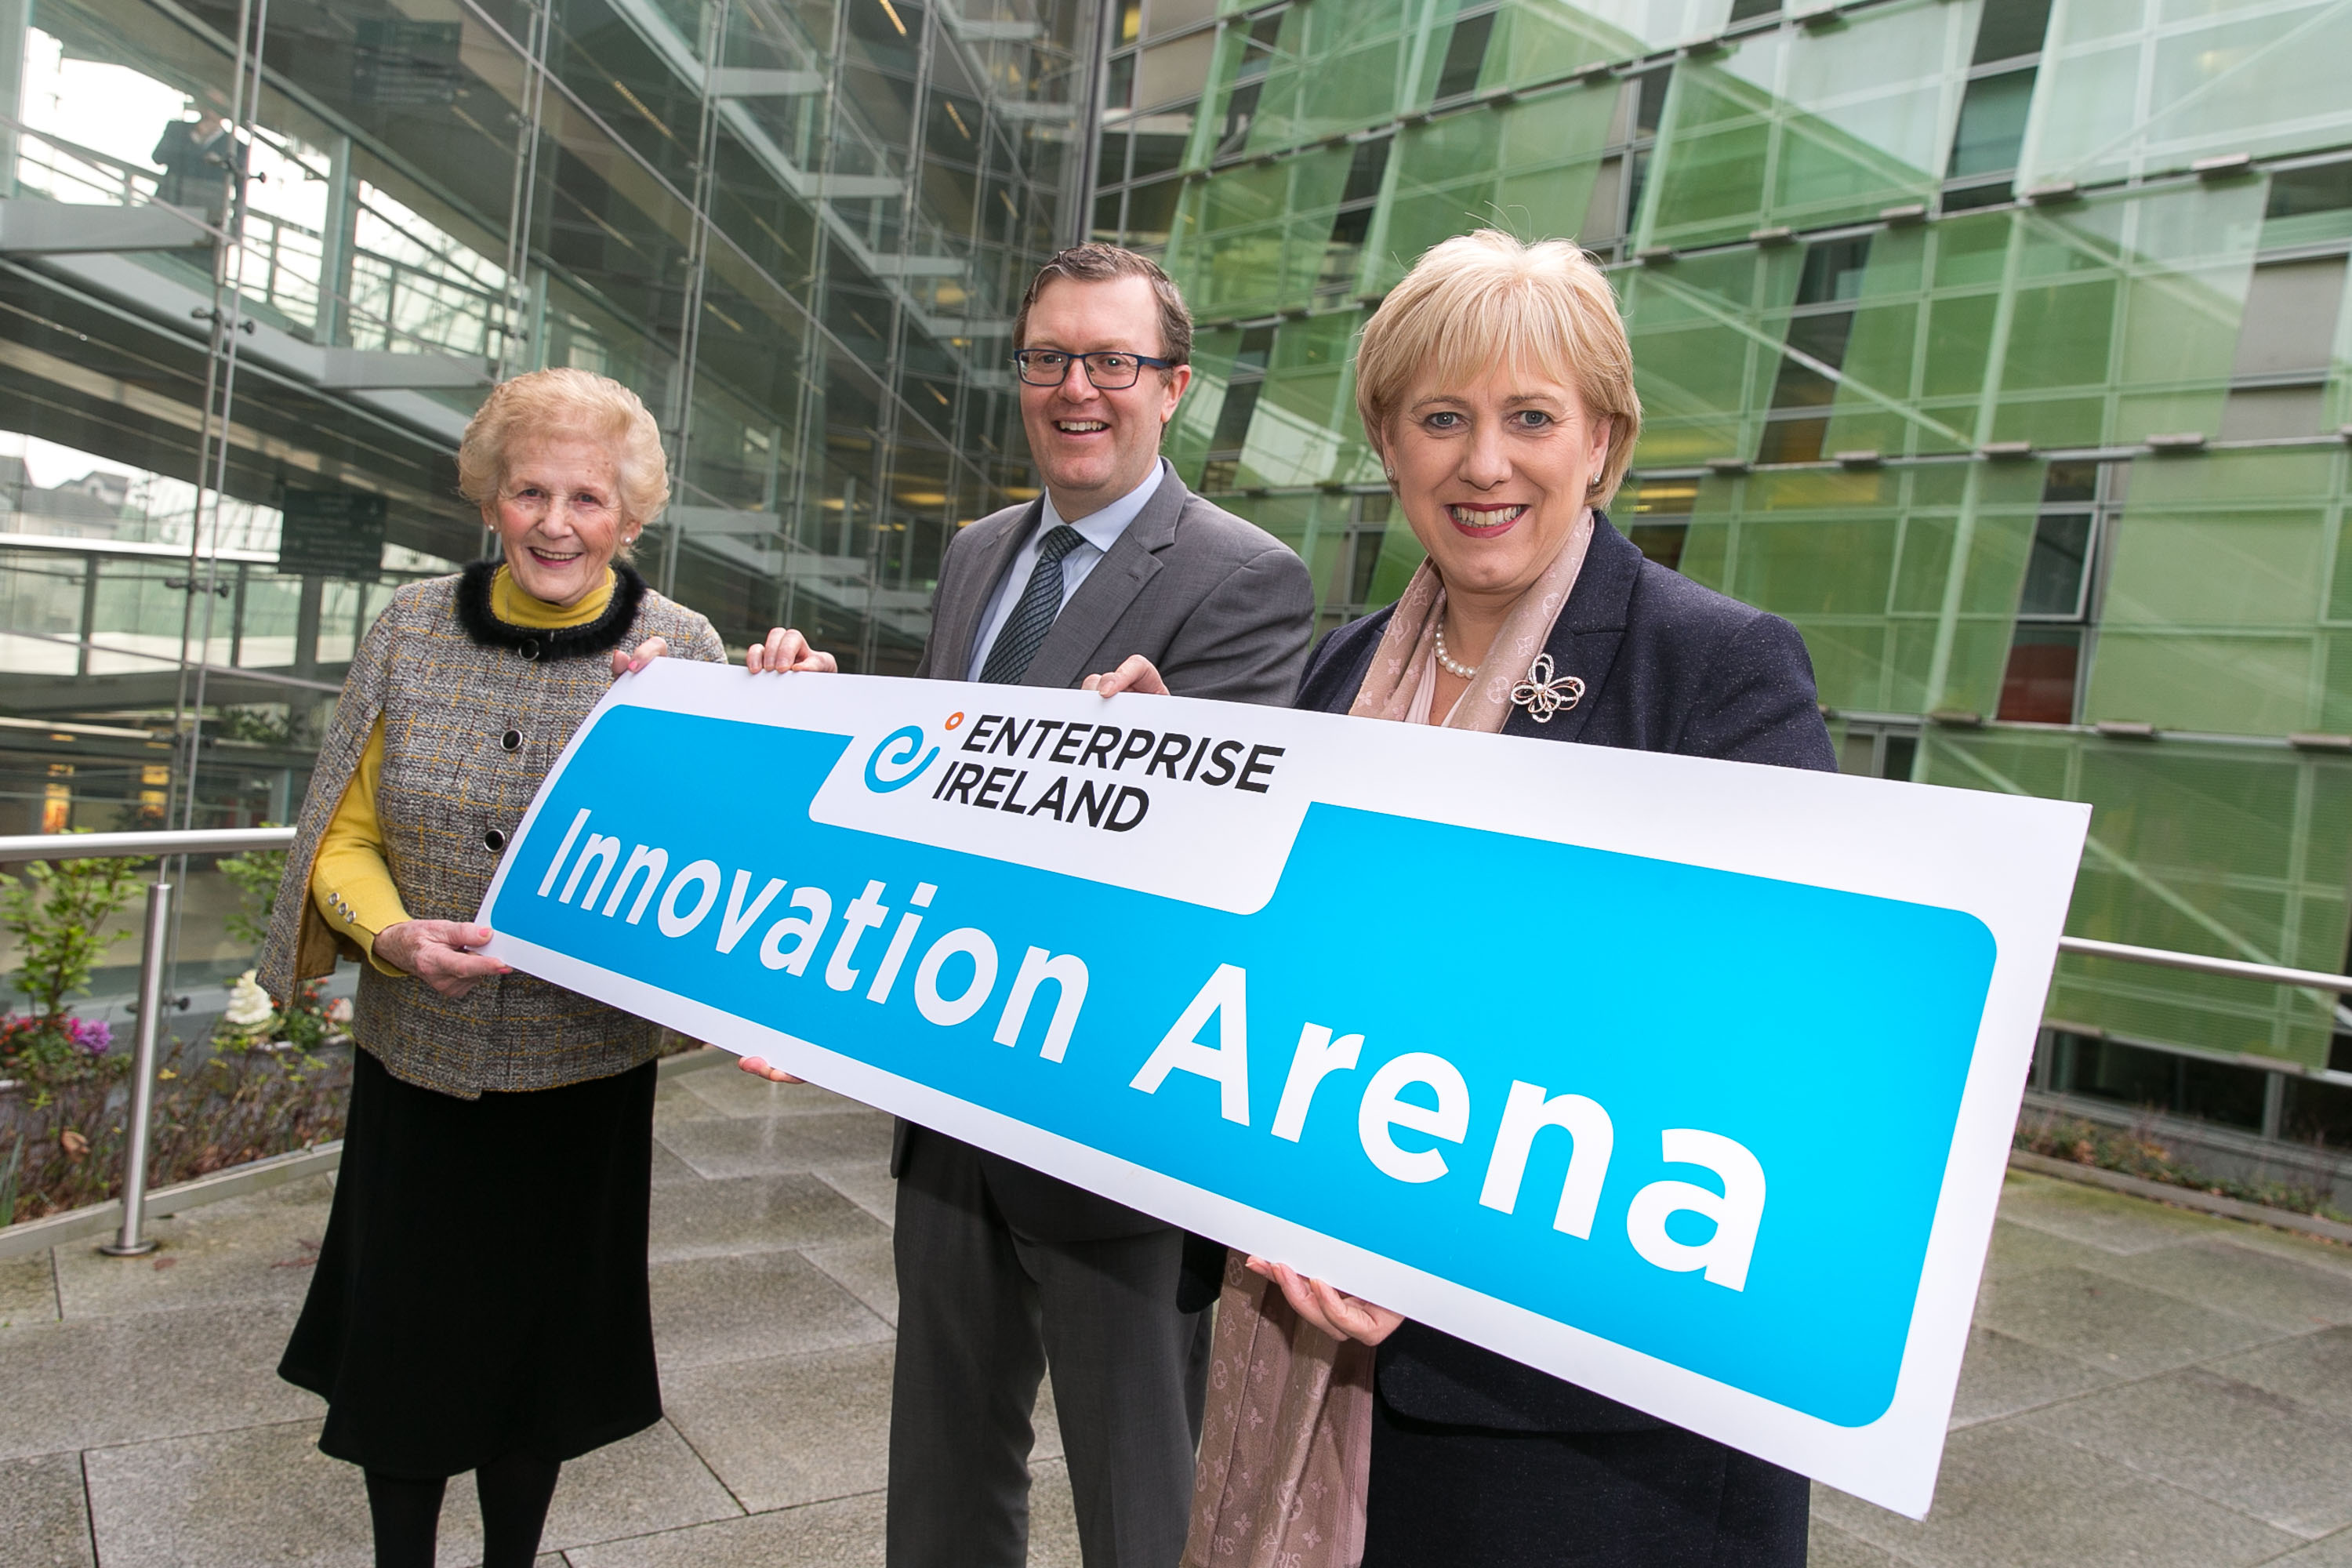 Applications Open for the Innovation Arena at the National Ploughing Championships